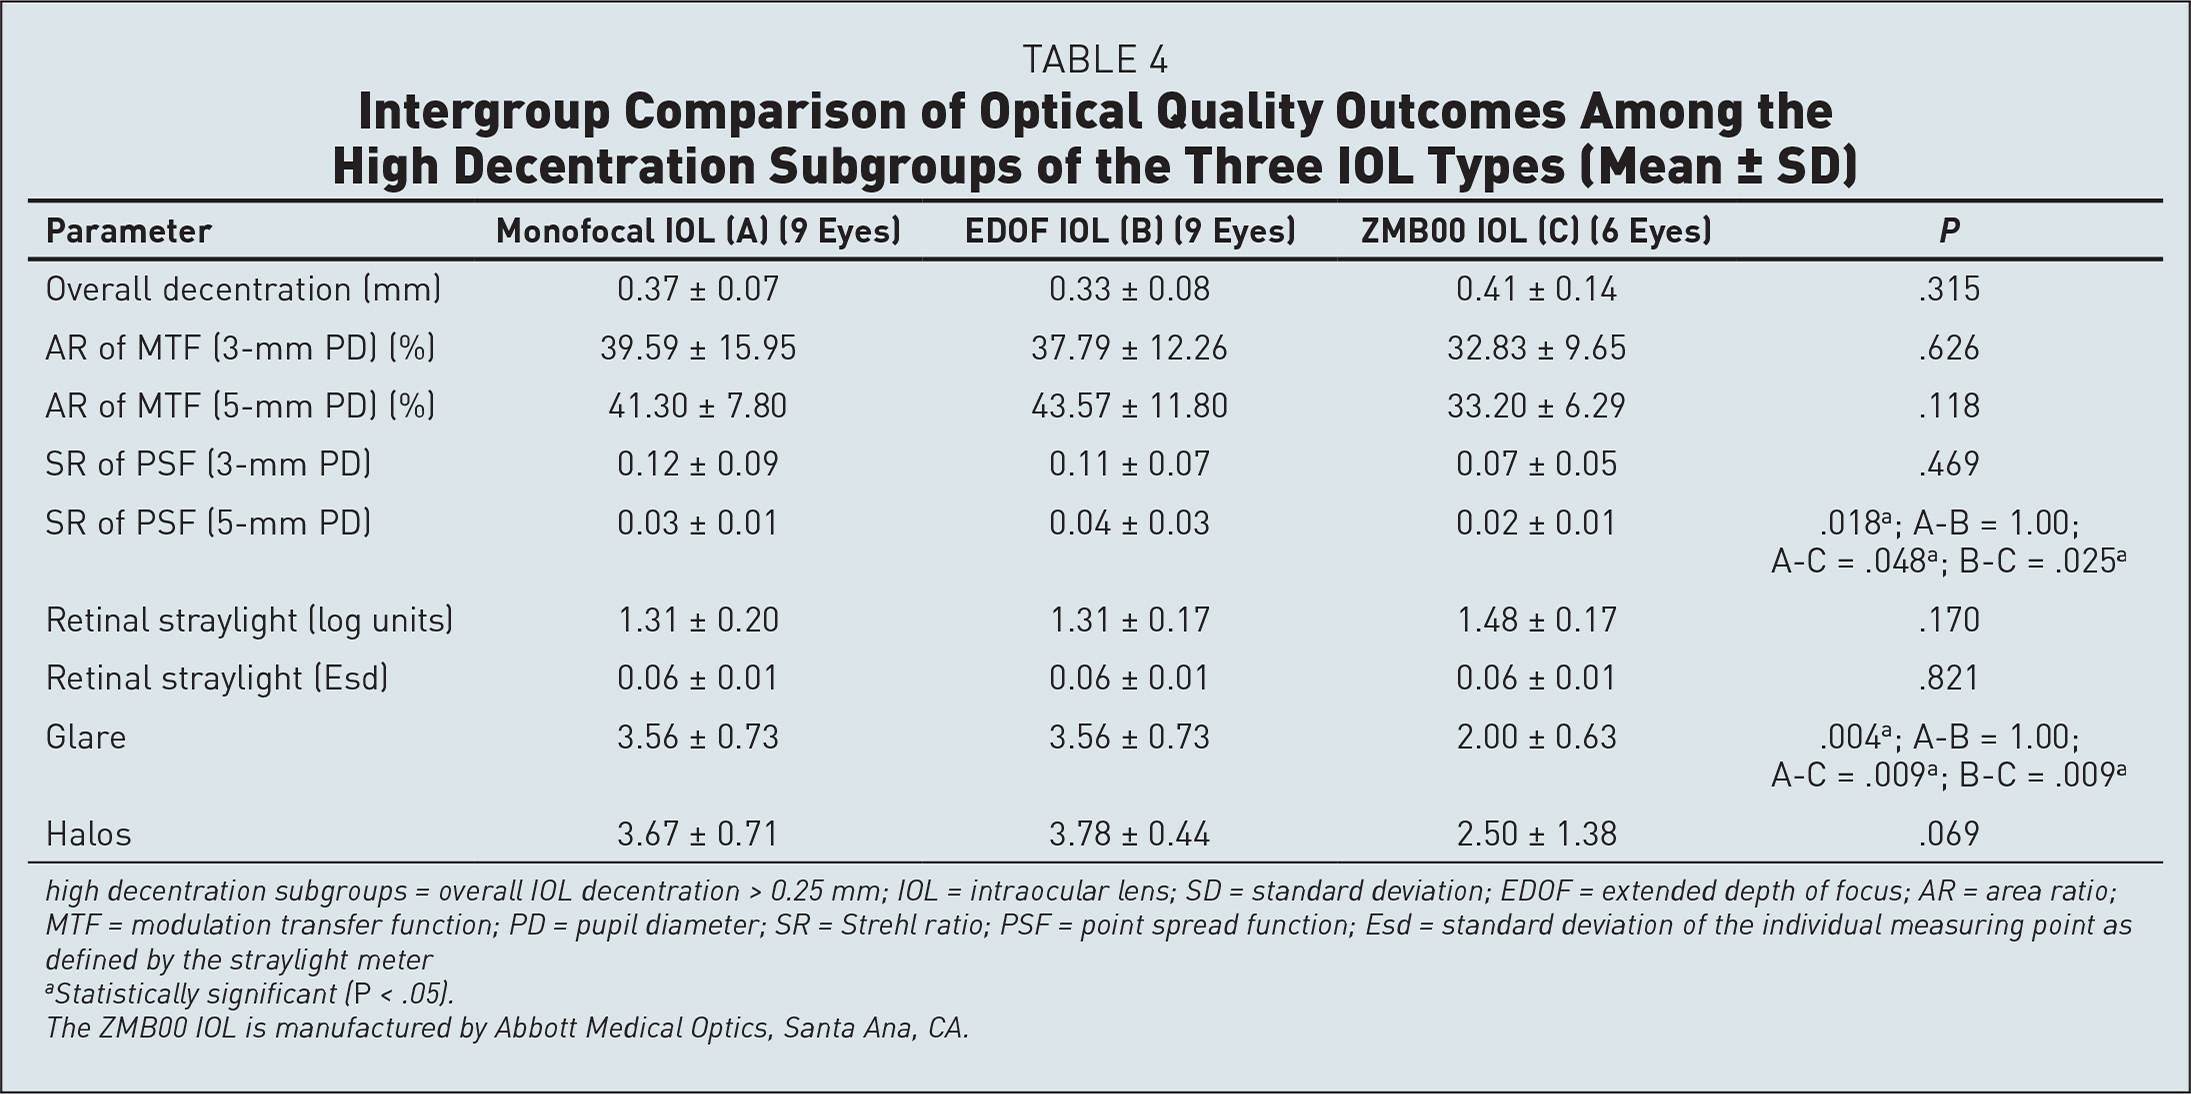 Intergroup Comparison of Optical Quality Outcomes Among the High Decentration Subgroups of the Three IOL Types (Mean ± SD)